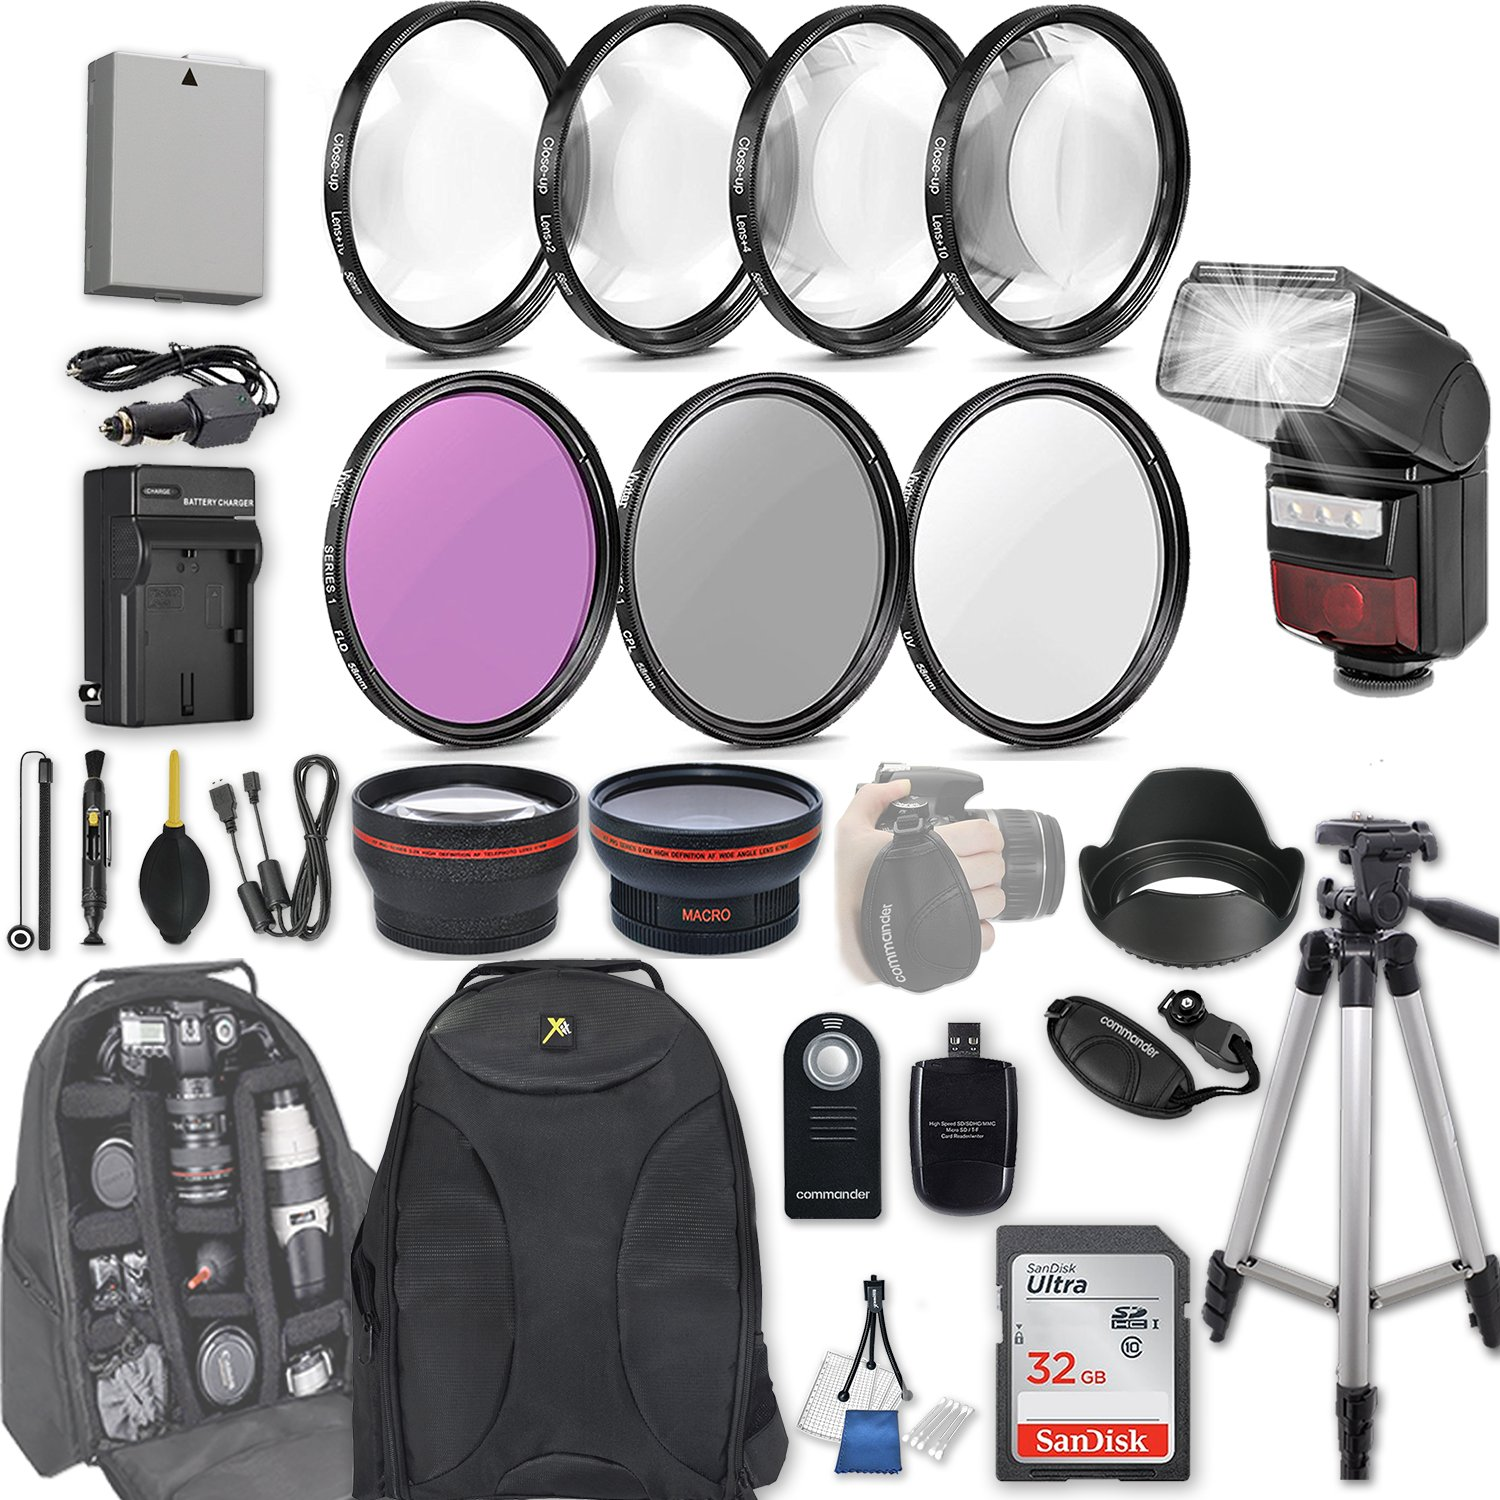 58mm 28 Pc Accessory Kit for Canon EOS Rebel T3i, T5i, 300D, 700D DSLRs with 0.43x Wide Angle Lens, 2.2x Telephoto Lens, LED-Flash, 32GB SD, Filter & Macro Kits, Backpack Case, and More by 33rd Street